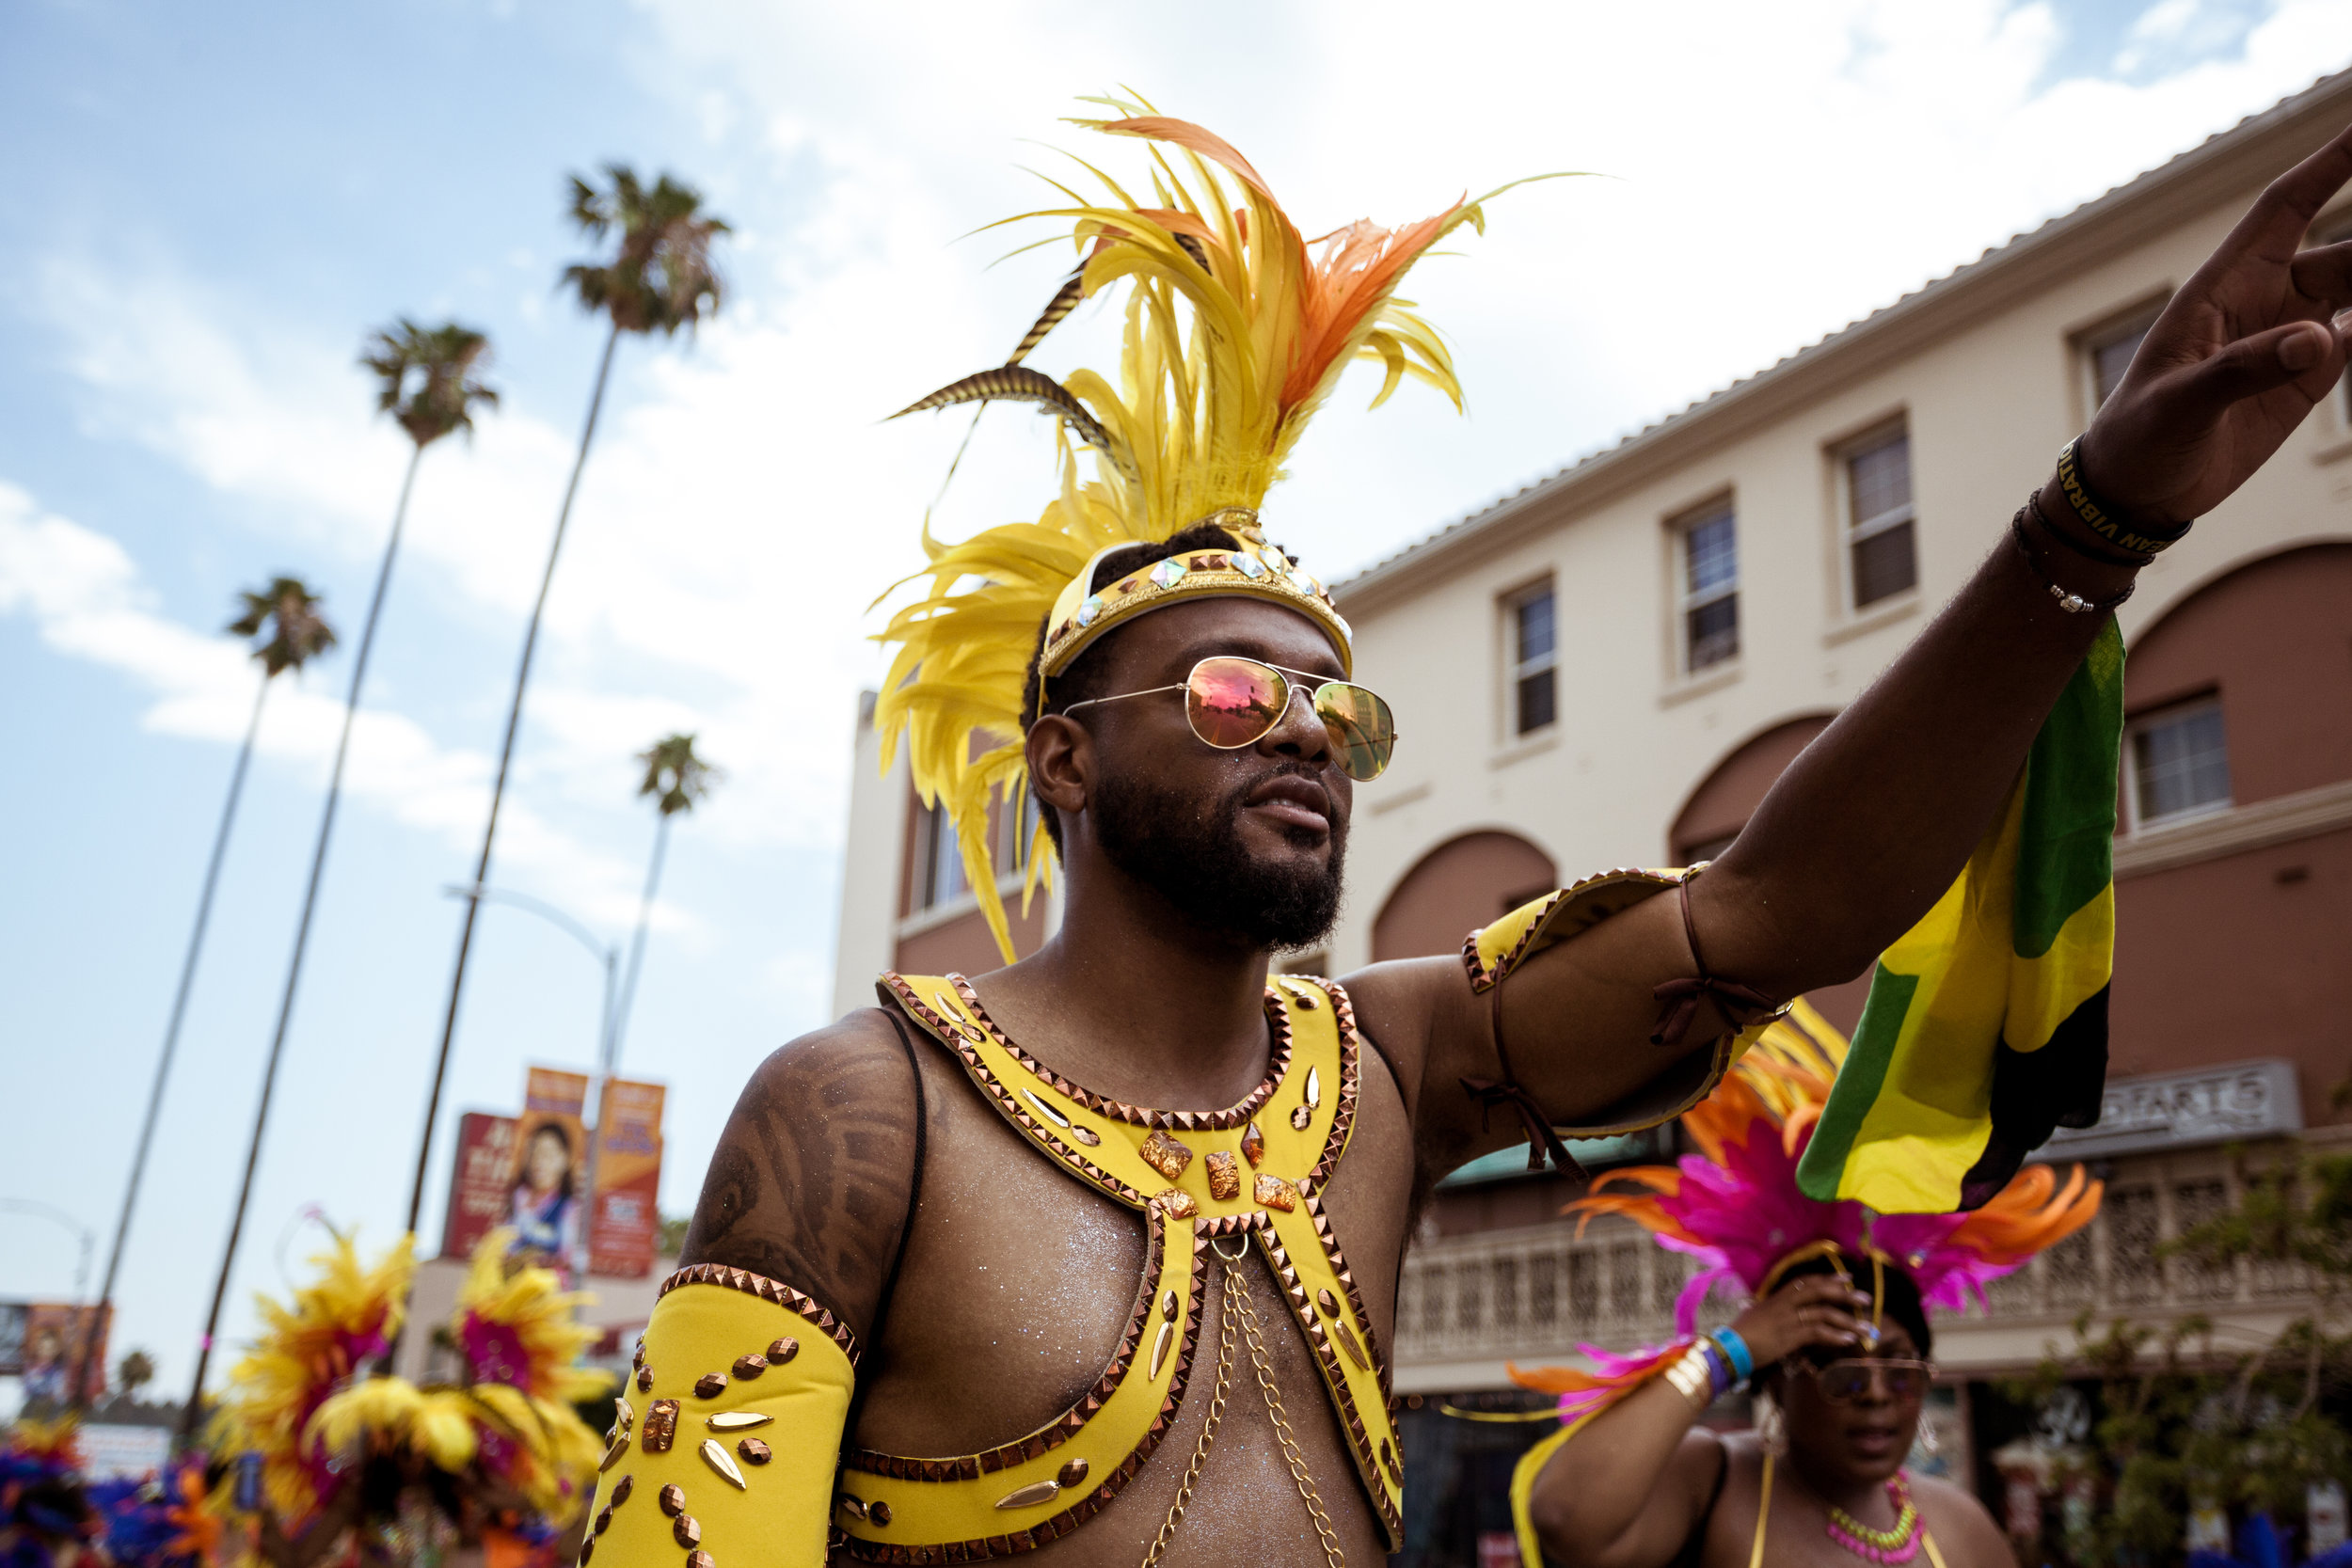 Chacon Images_Carnaval_Print-5796.jpg